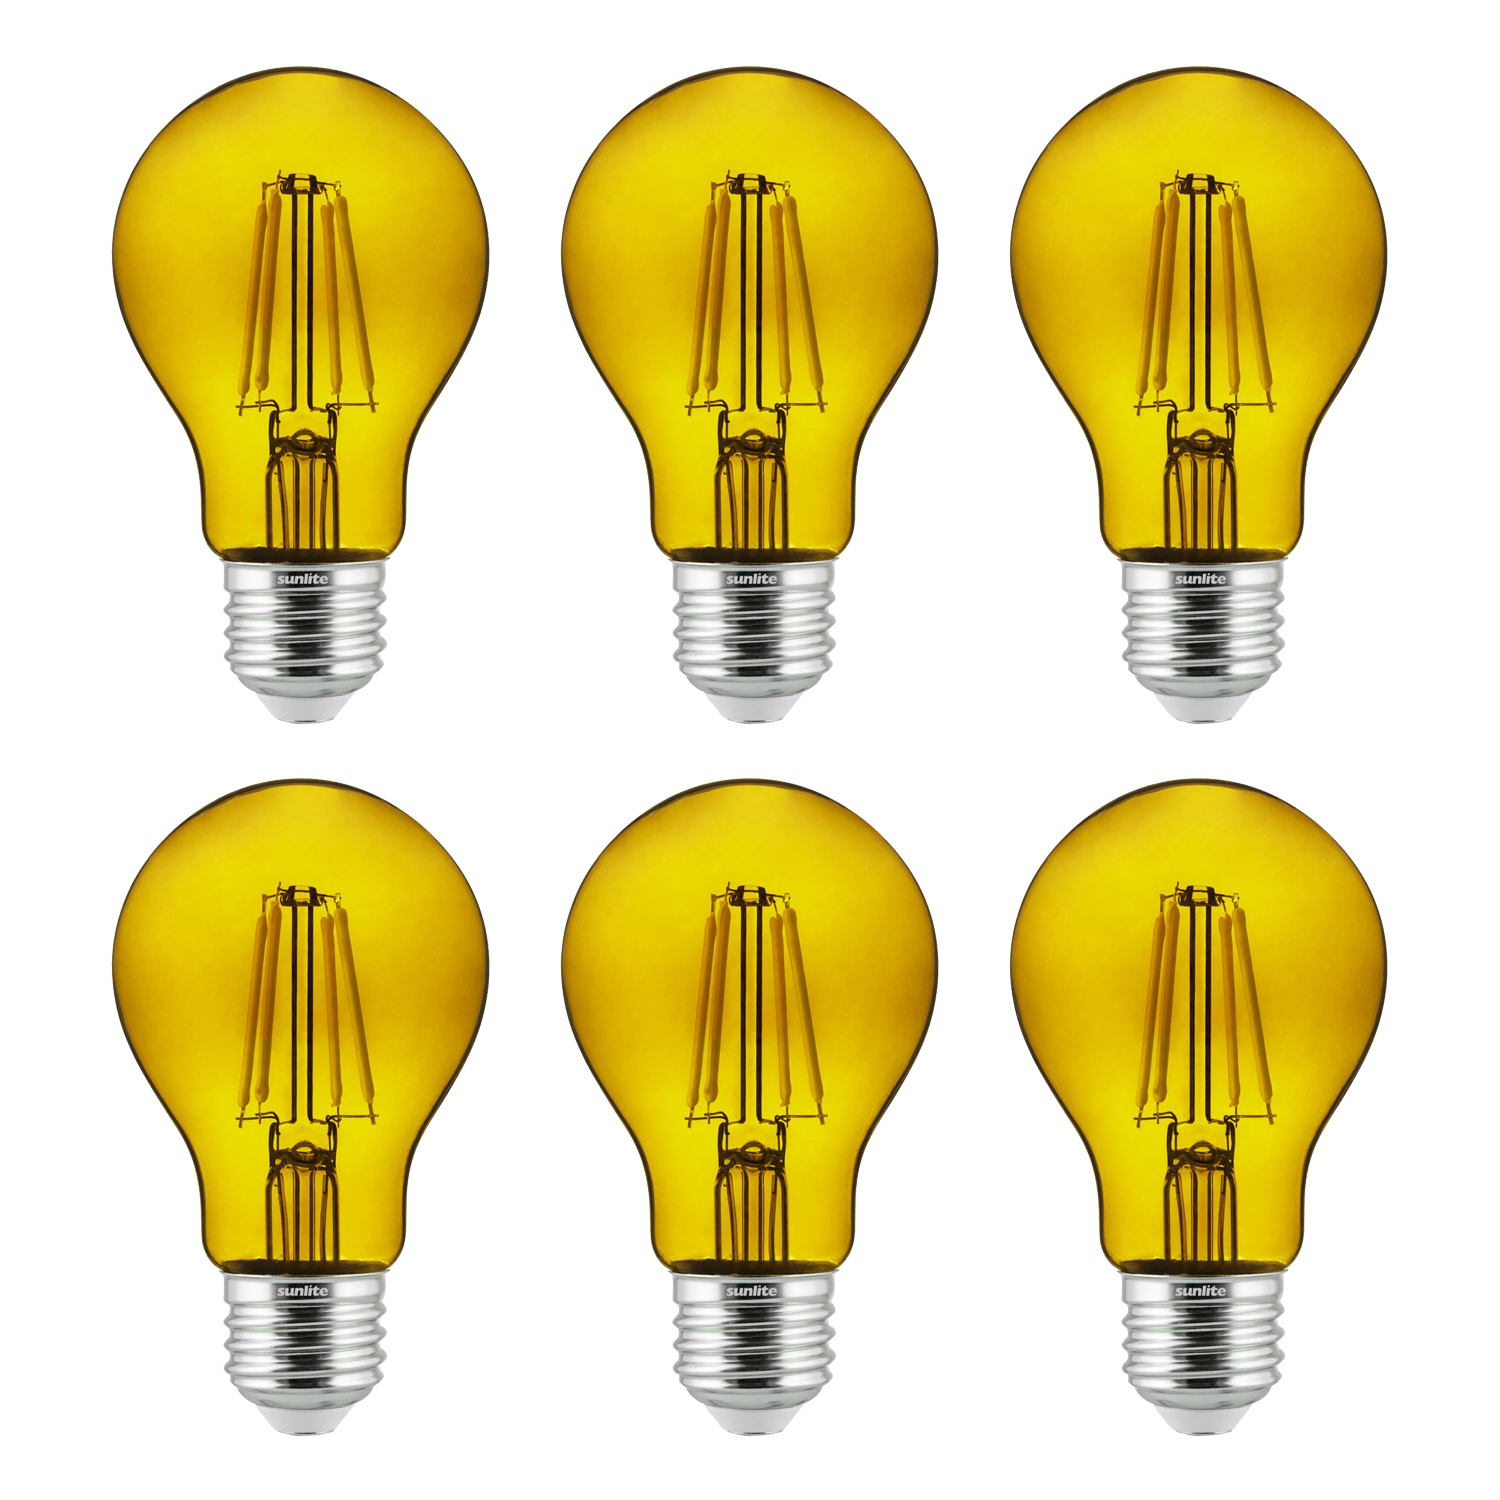 6-Pack Sunlite LED Transparent Yellow A19 Filament Bulbs, 4.5 Watts, Dimmable, UL Listed